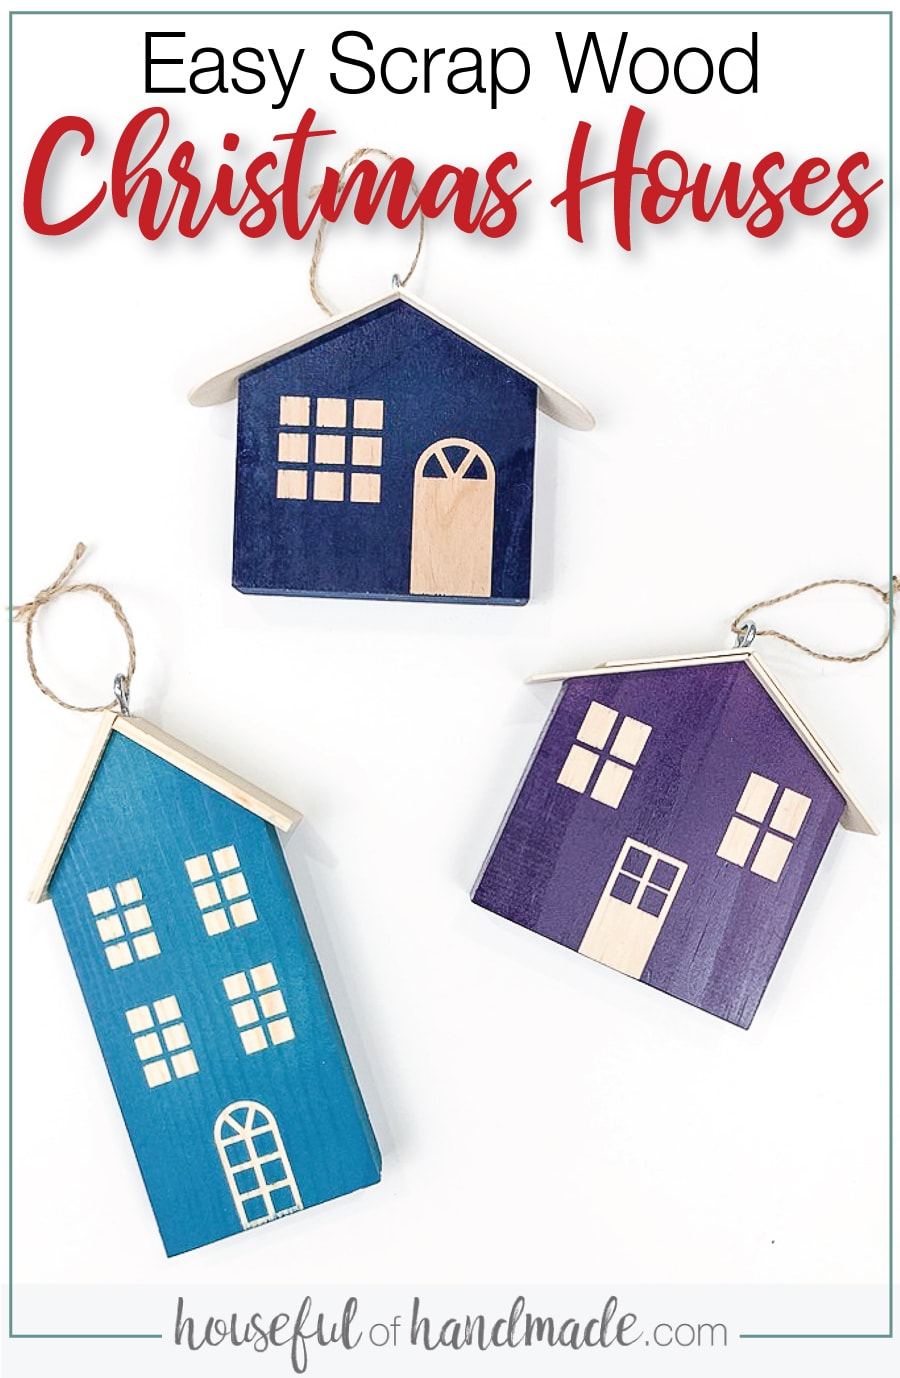 Three christmas house ornaments laying on a white background with text overlay: Easy Scrap Wood Christmas houses.